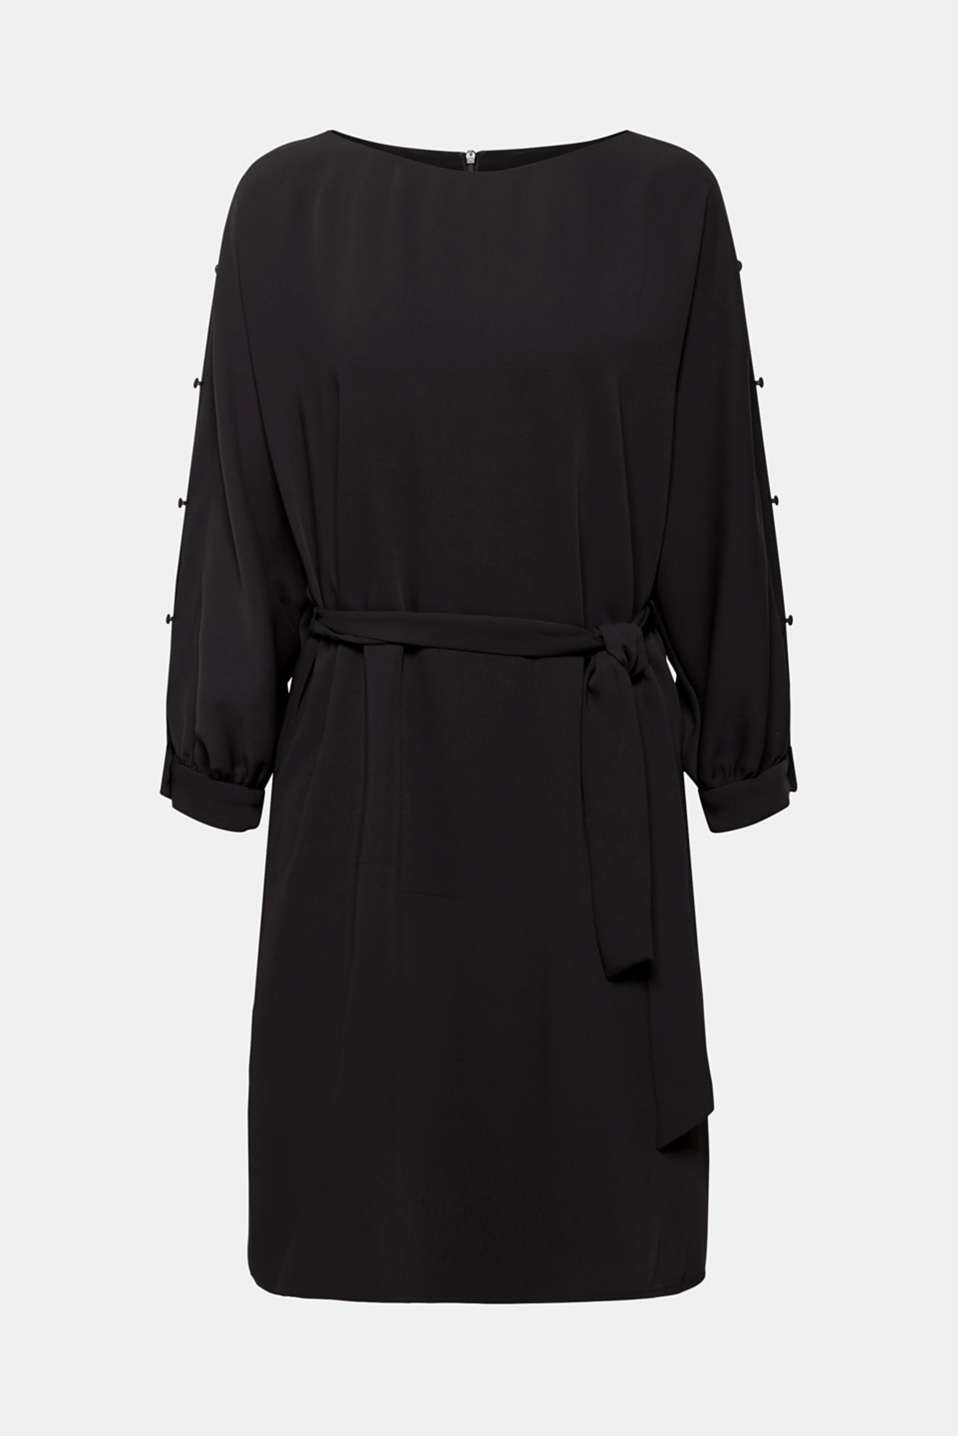 Woven dress with batwing sleeves and a tie-around belt, BLACK, detail image number 6